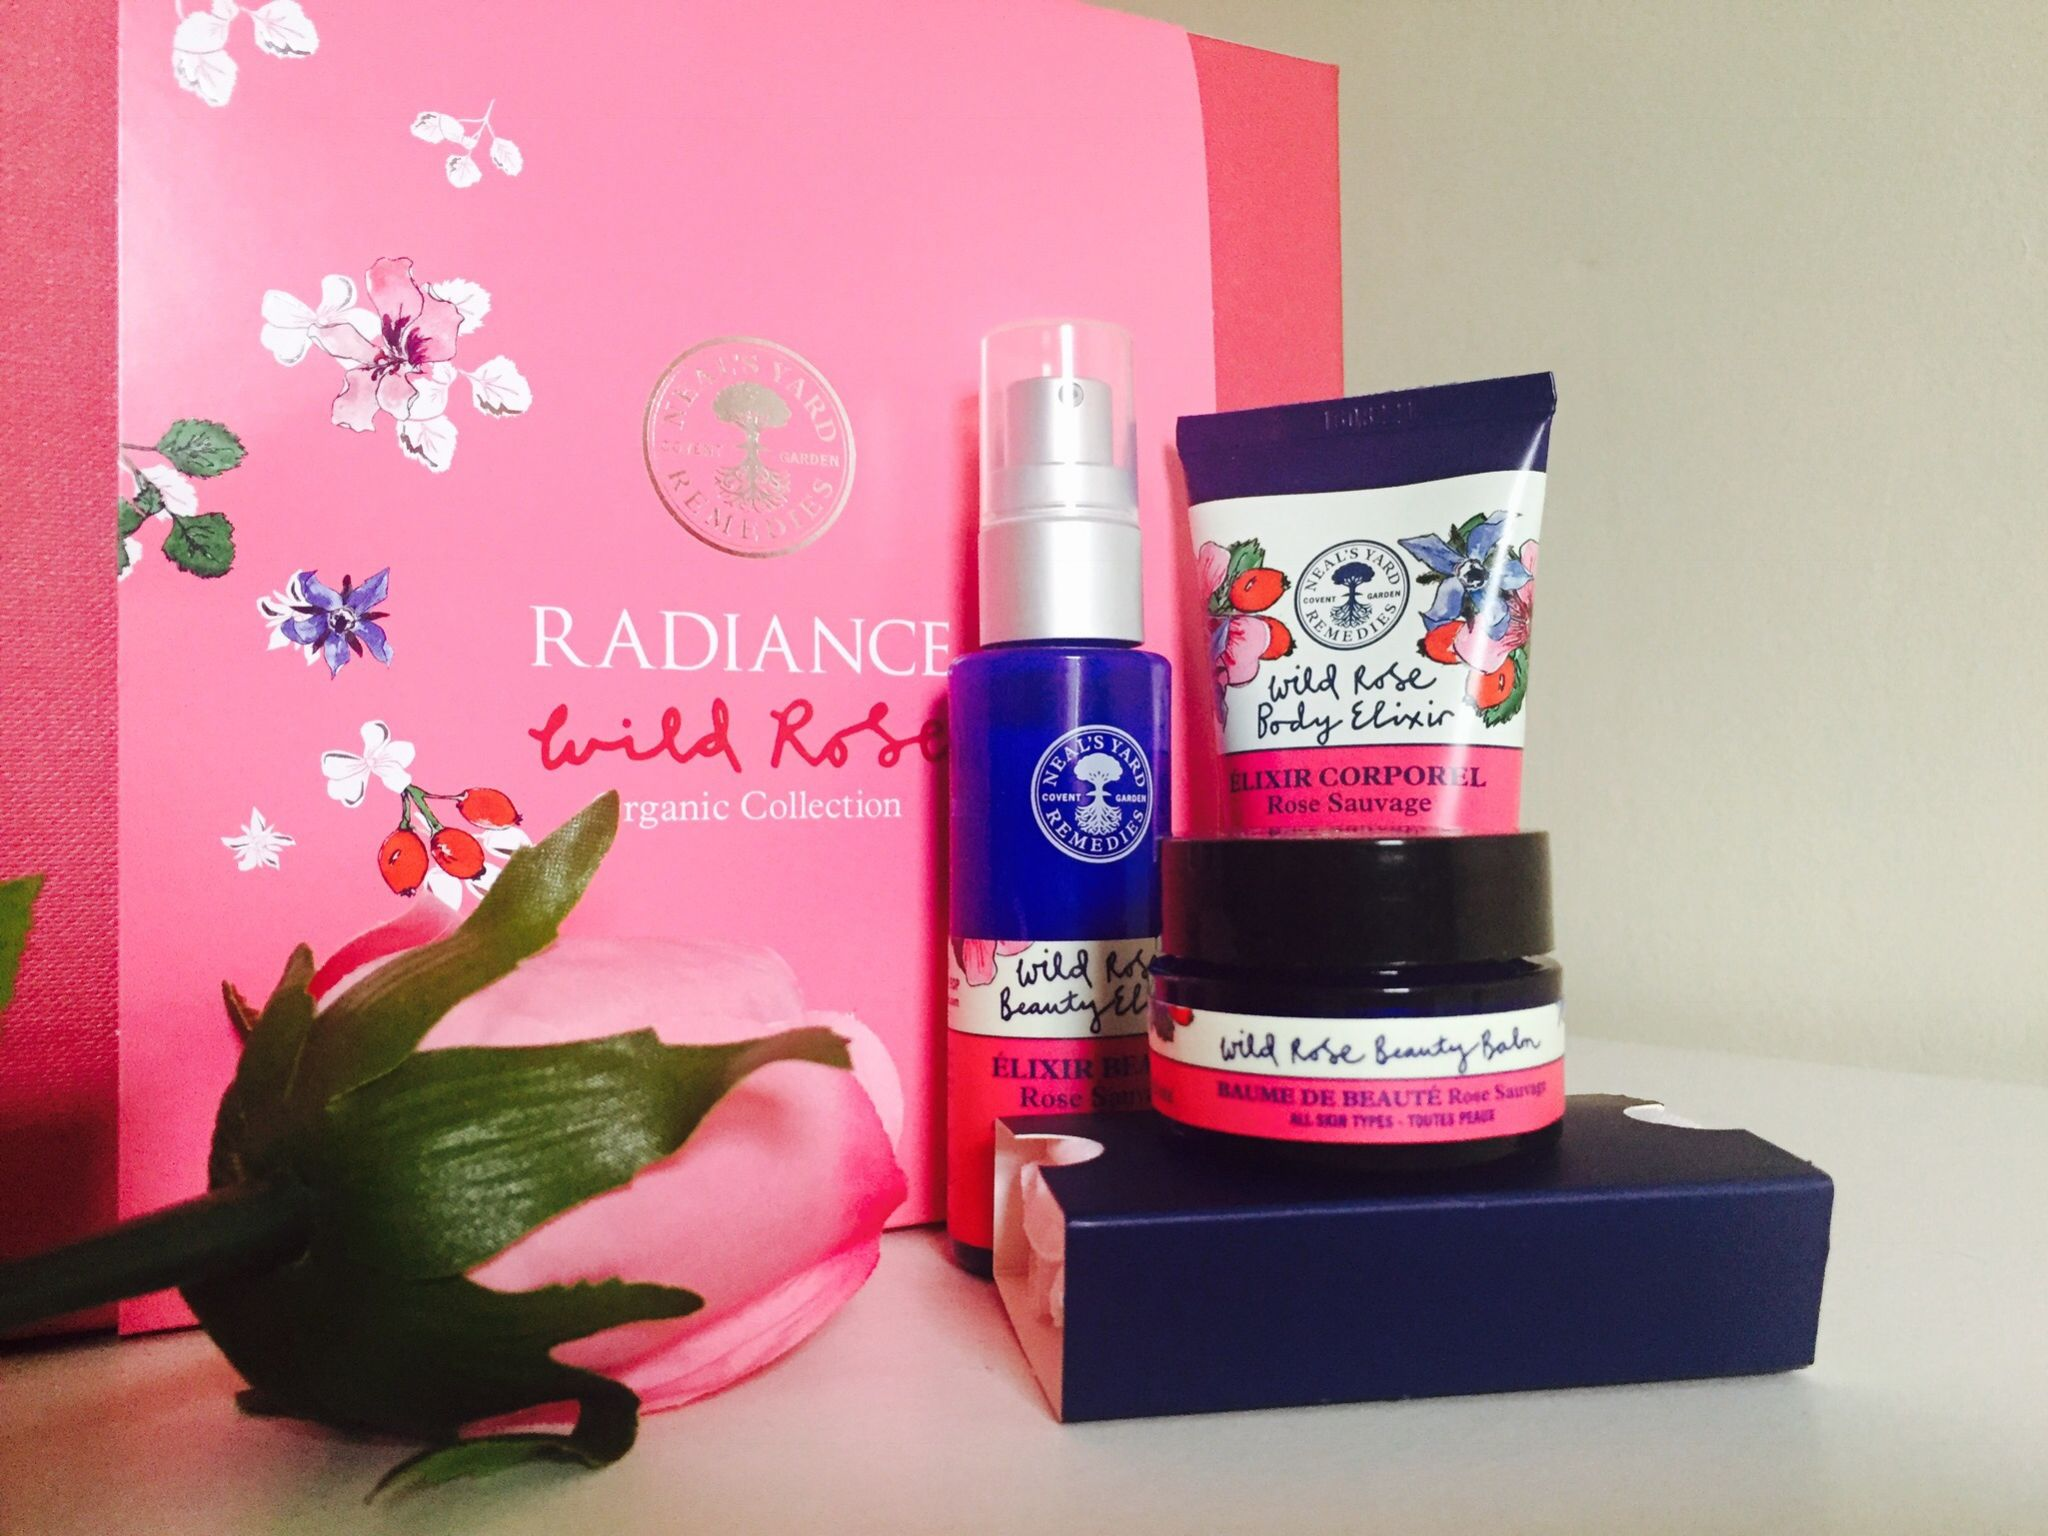 Neal's Yard Remedies Wild Rose Organic Collection